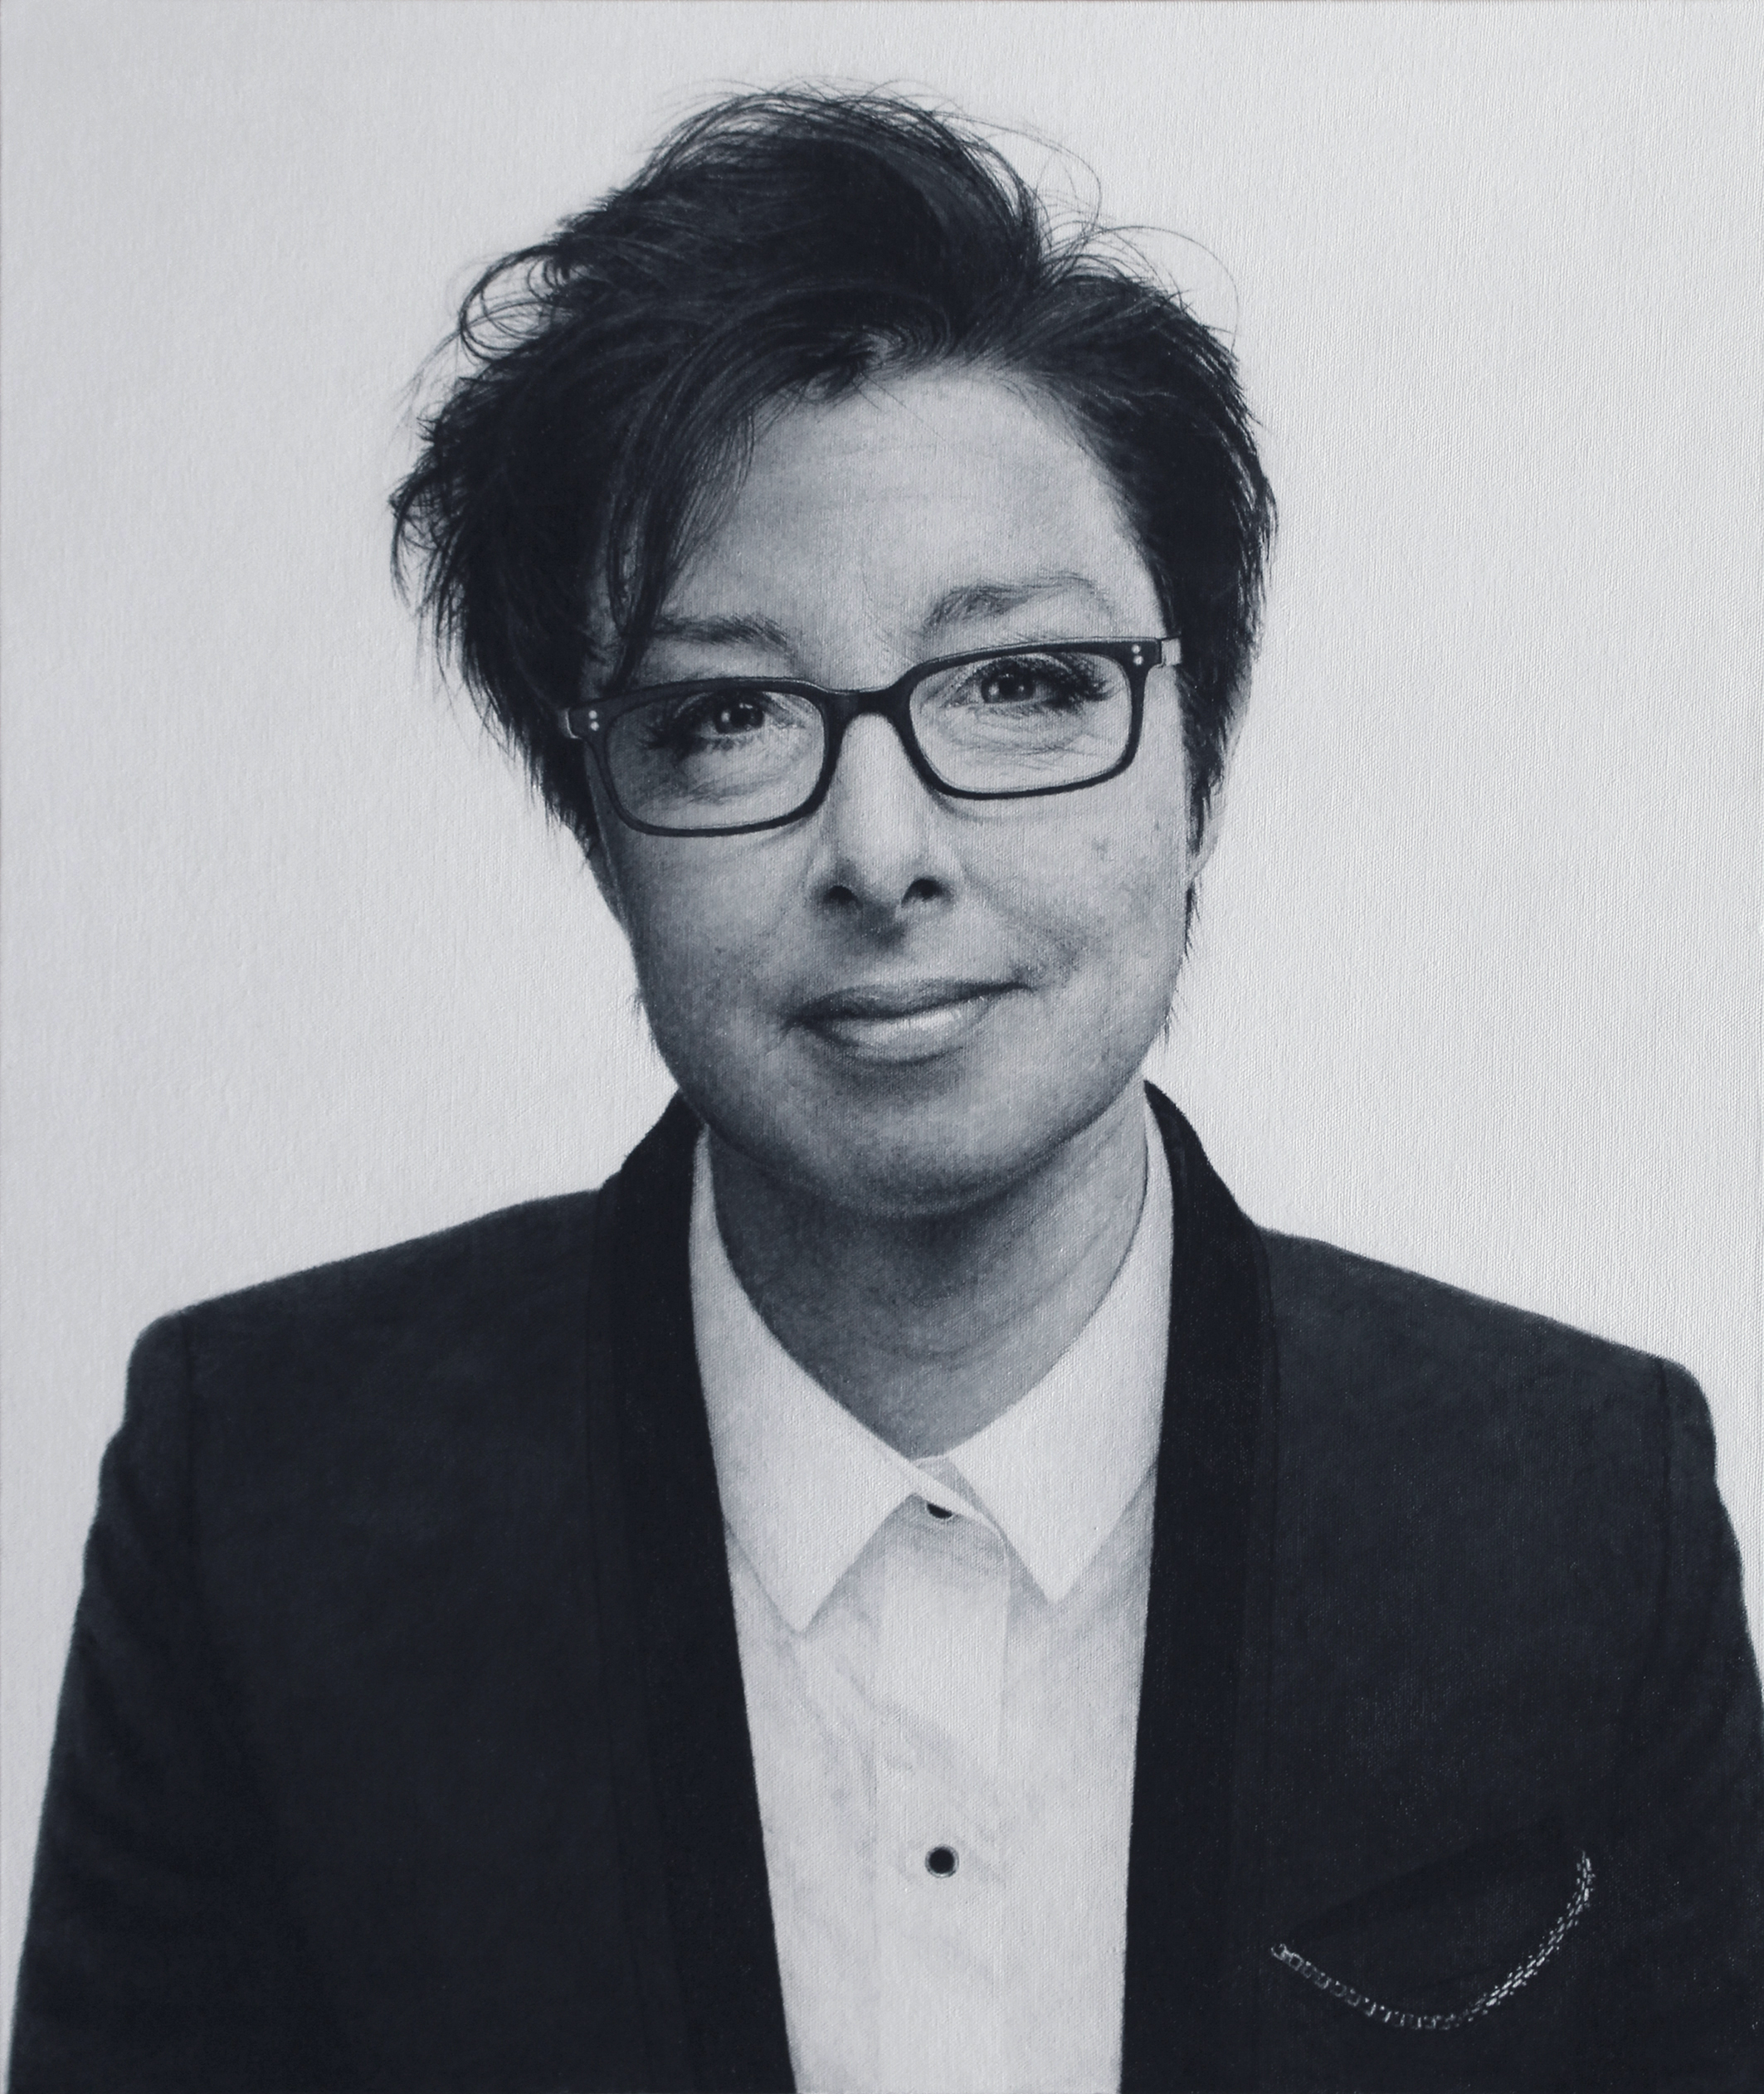 Martyn Burdon, Sue Perkins, Acrylic on Canvas, 63cm x 53cm x 3cm,  http://www.martynburdon.com